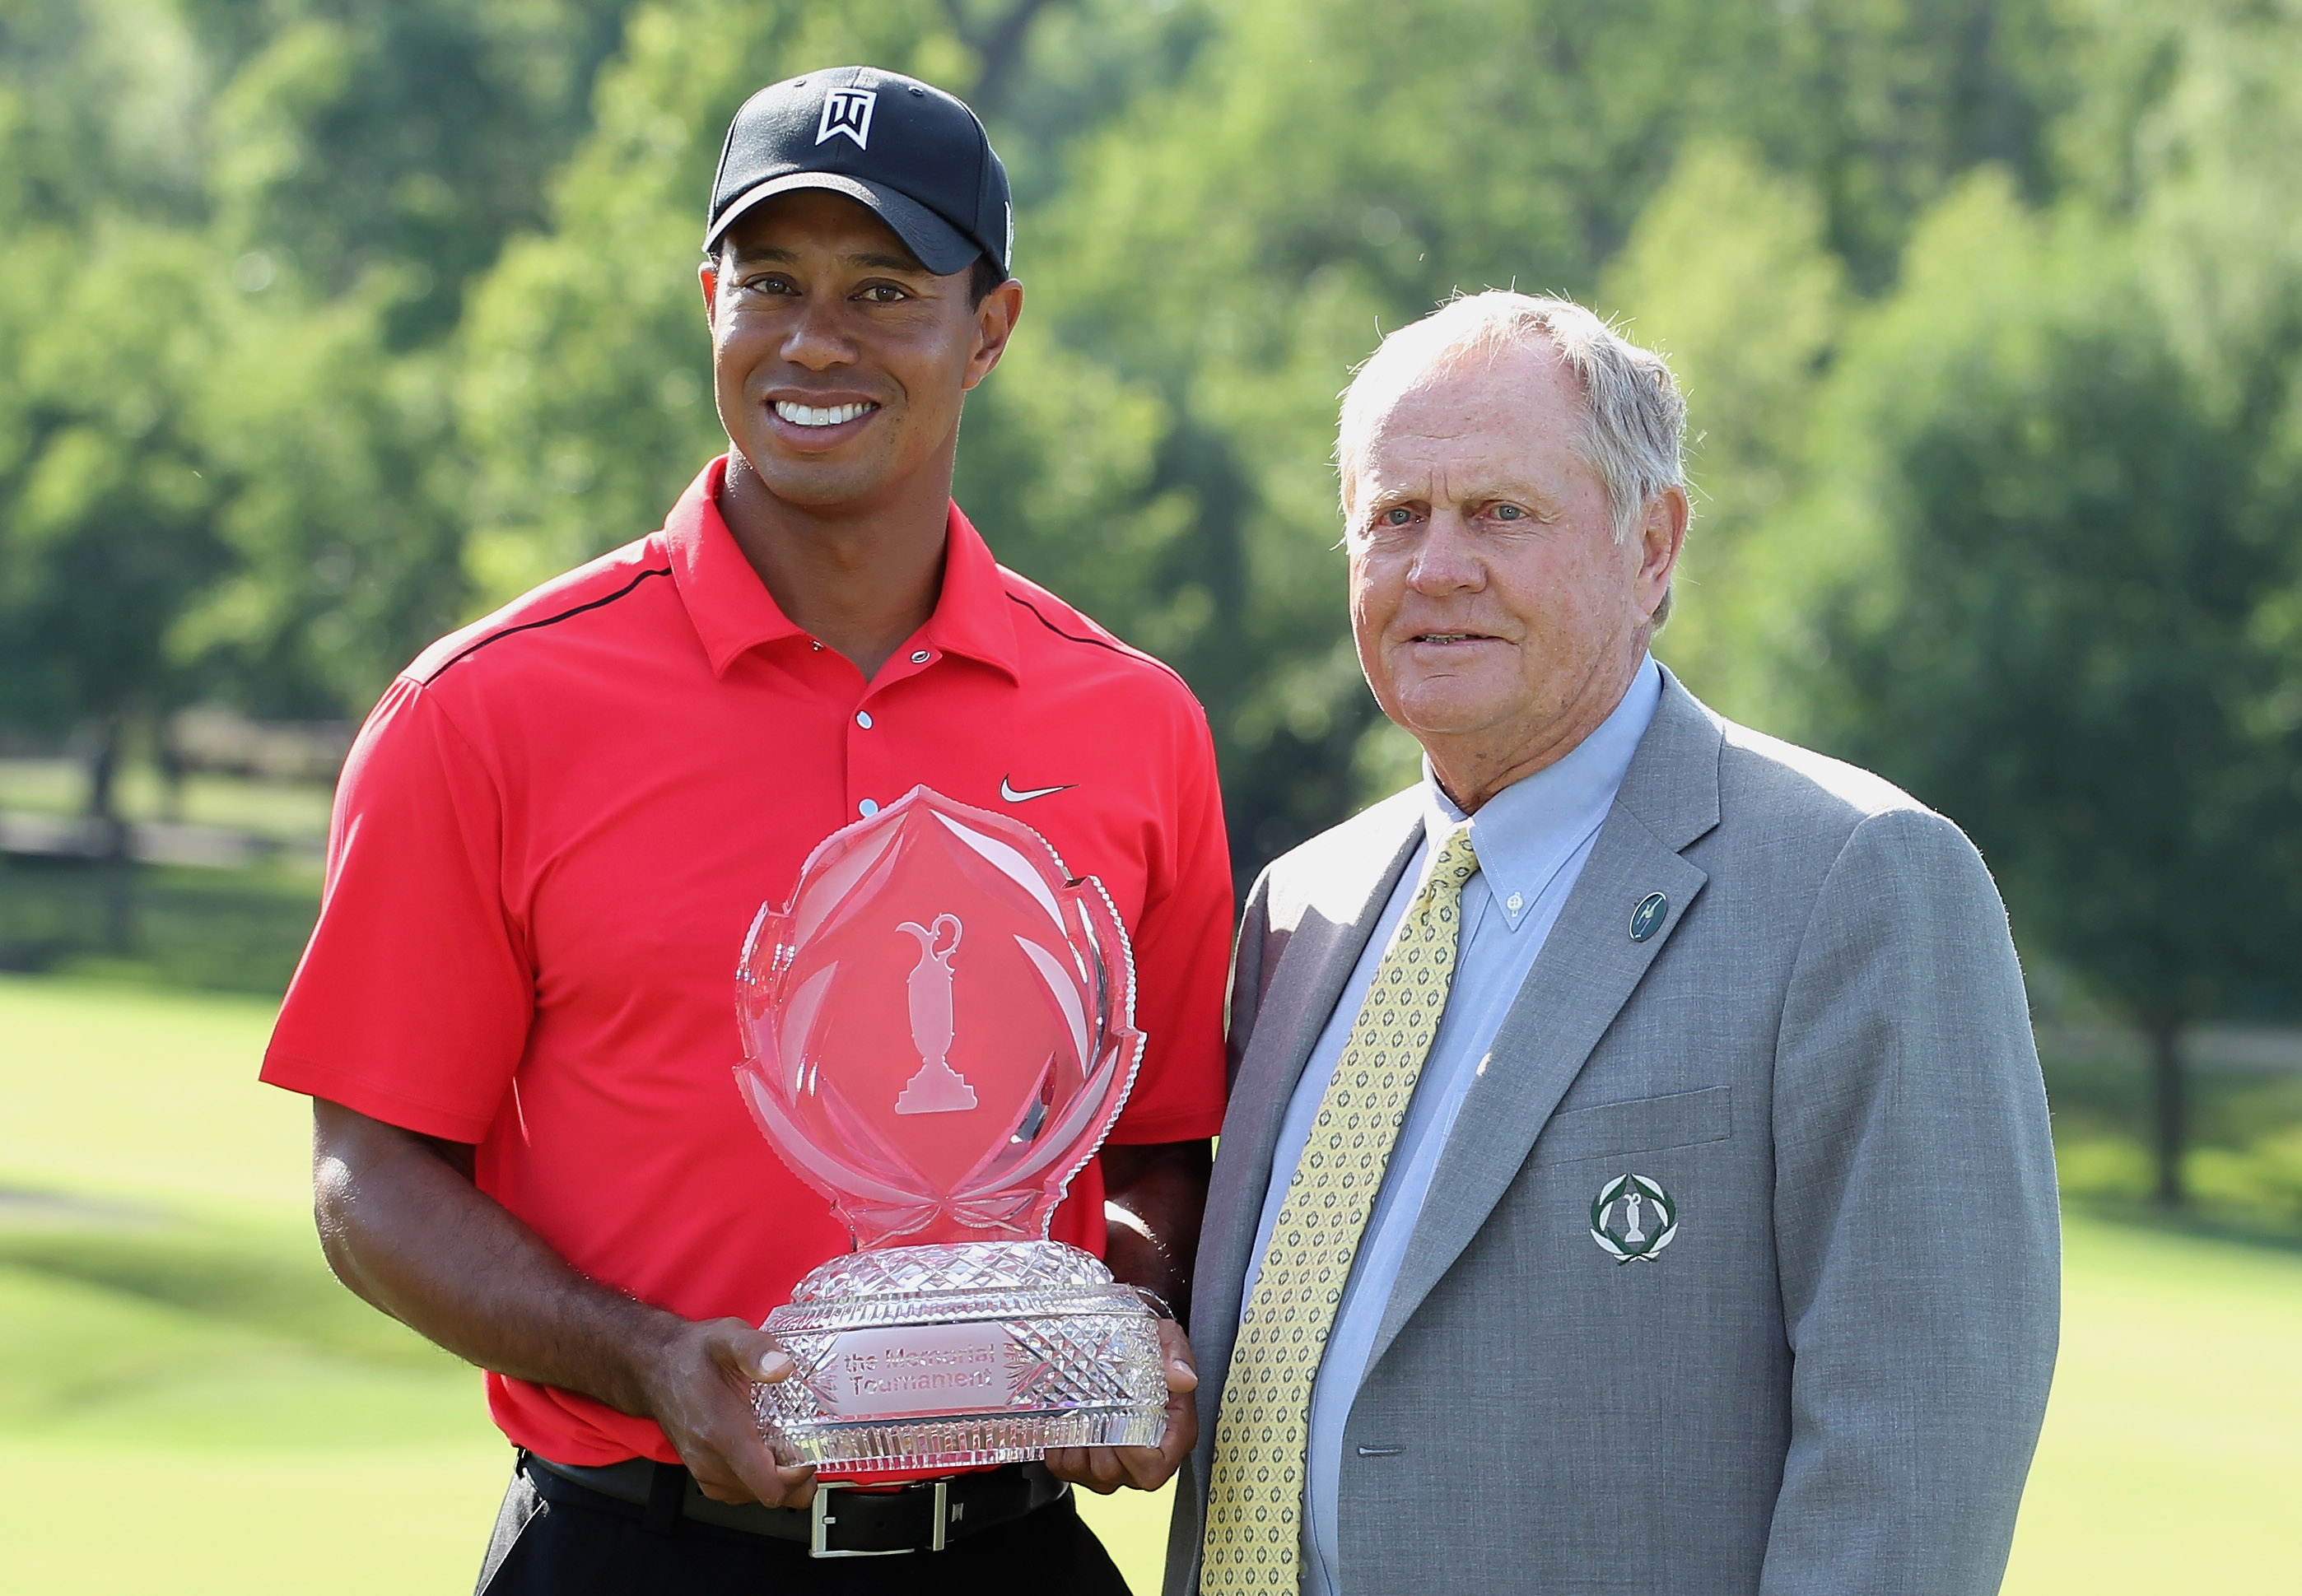 Tiger Woods commits to play Memorial for next tournament